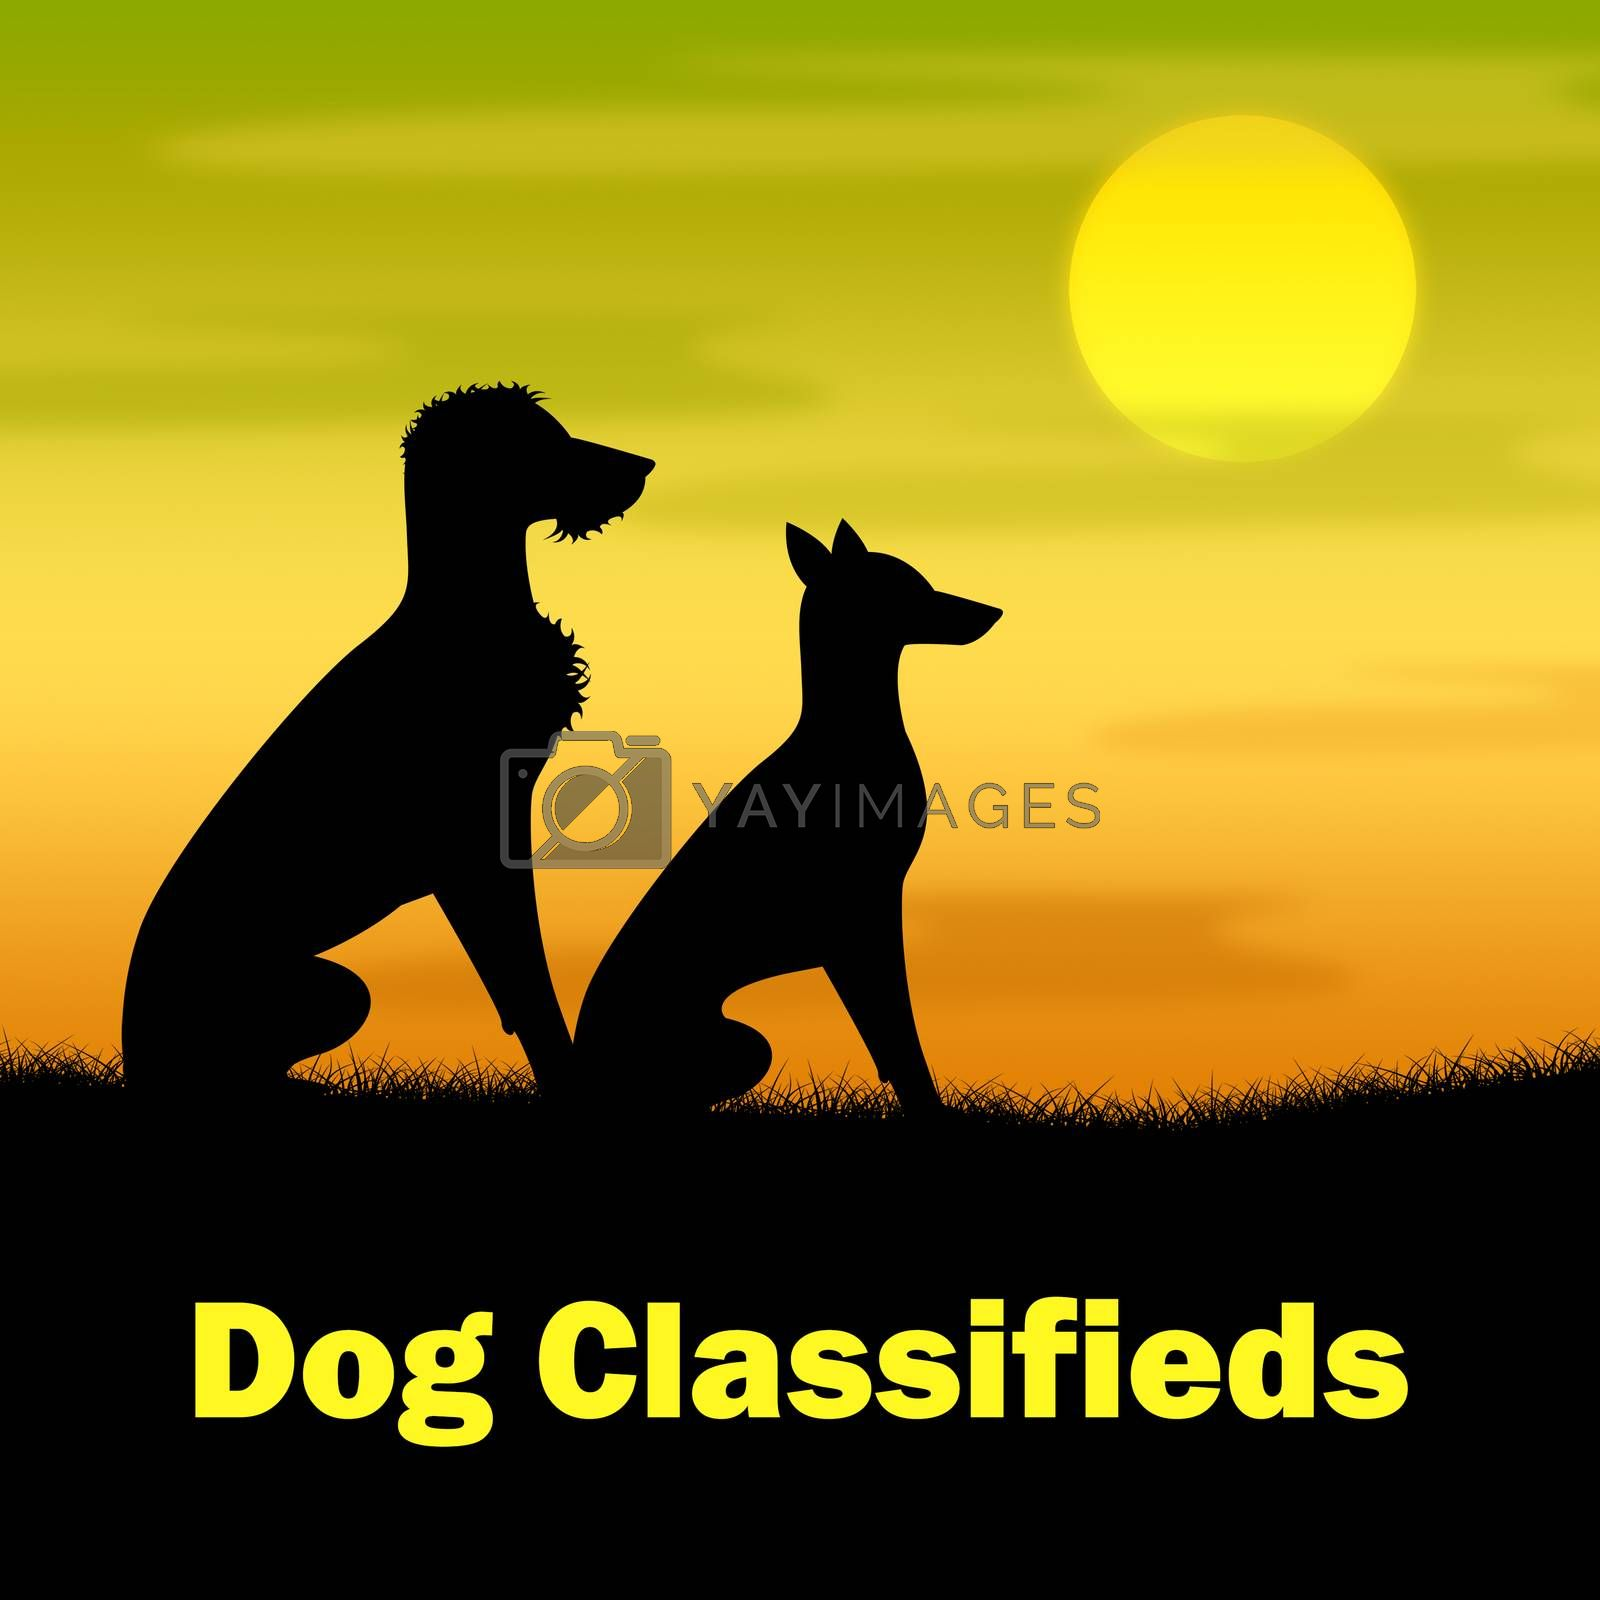 Dog Classifieds Meaning Evening Newspaper And Pasture